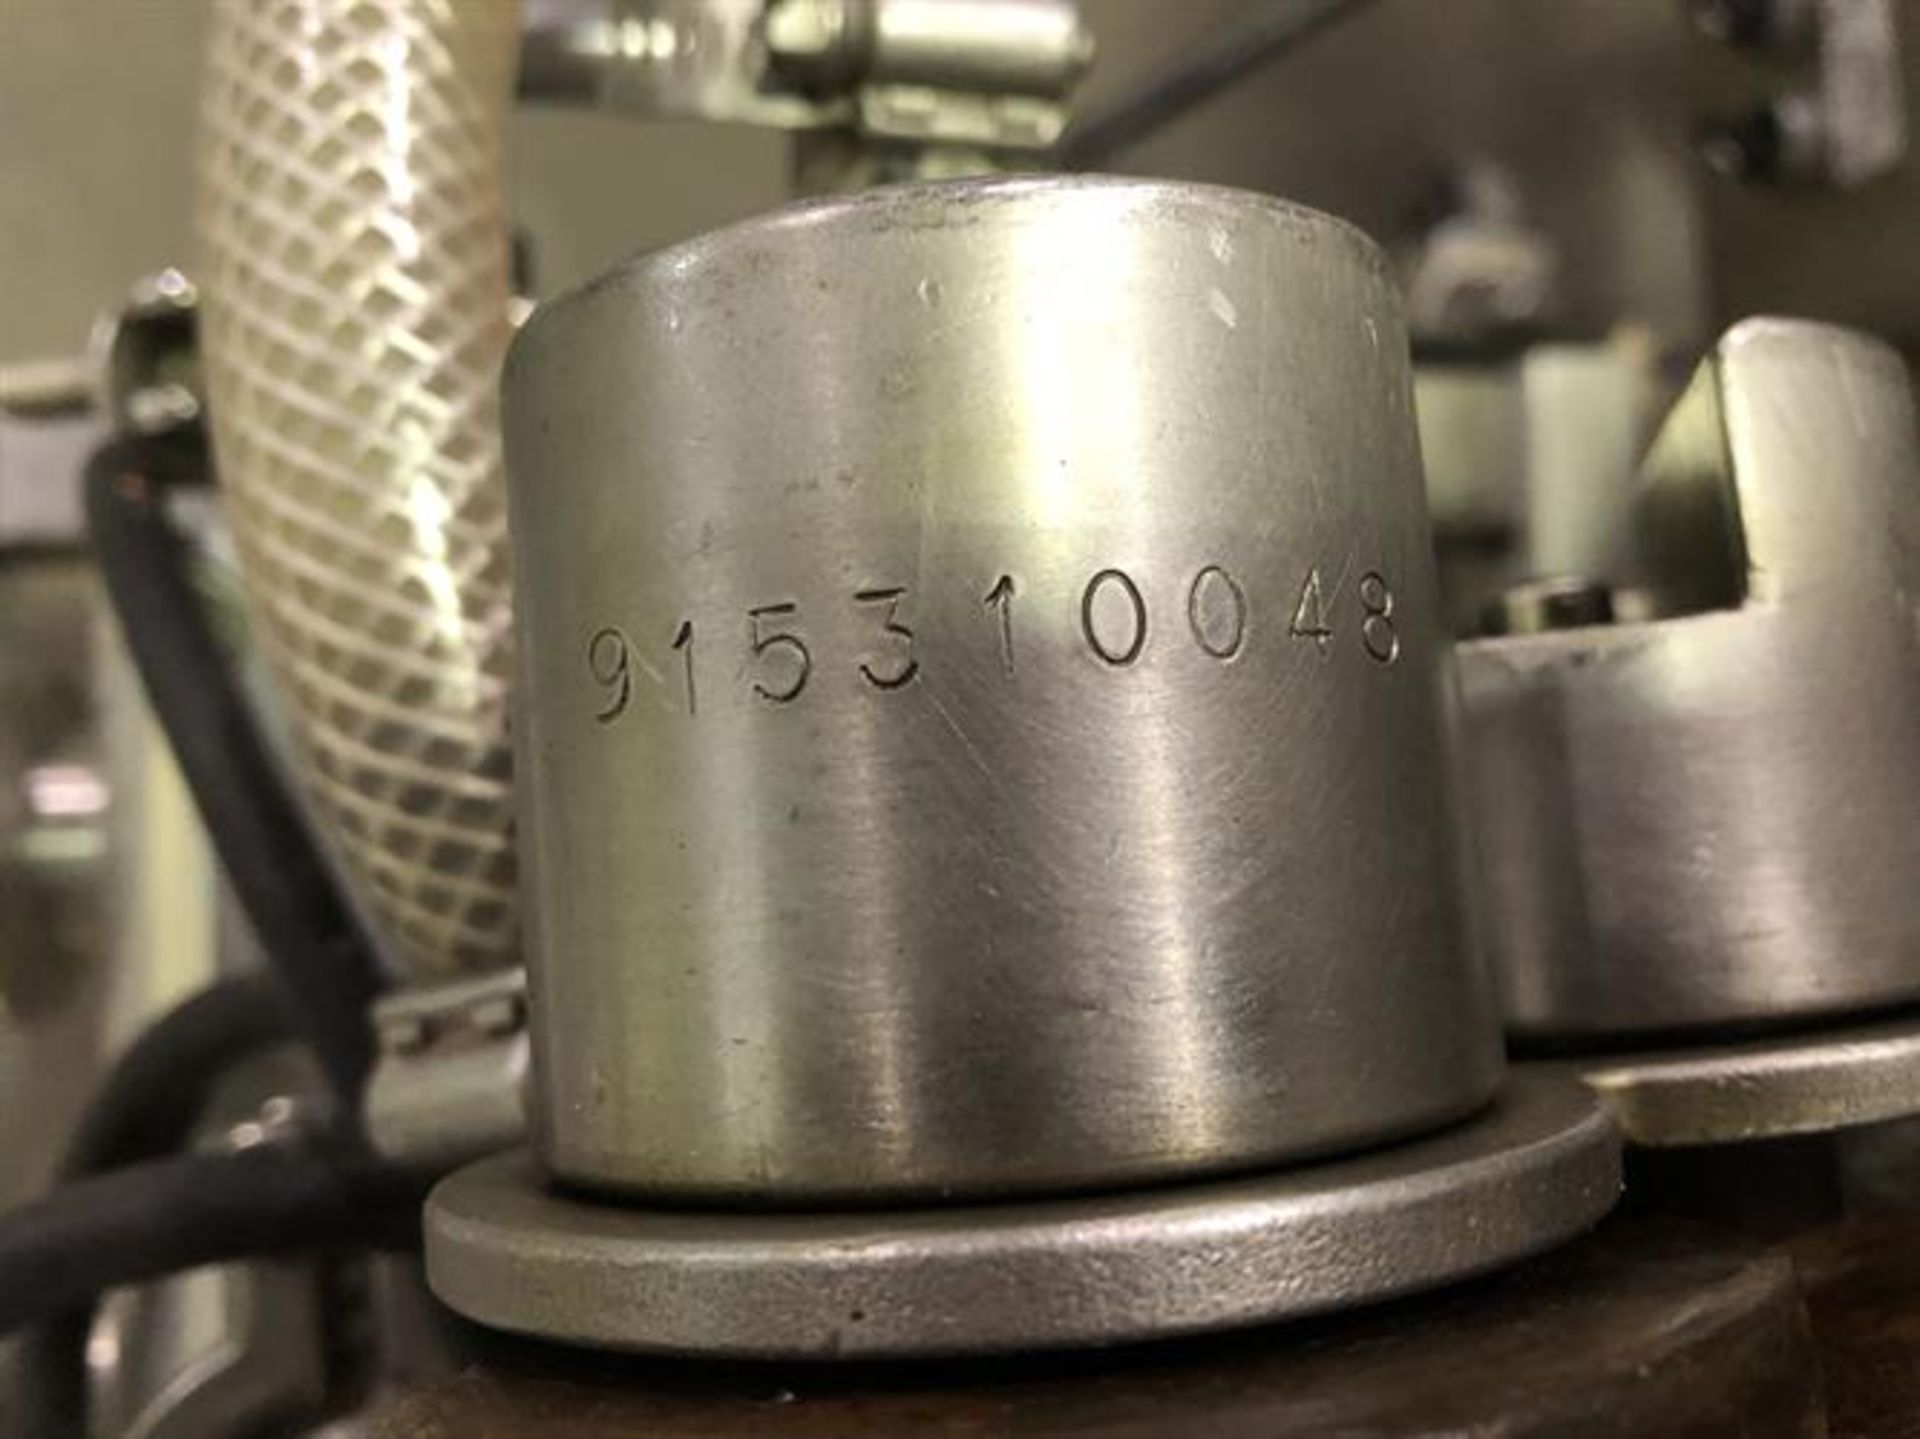 Vemag Robot 500 Stainless Steel Vacuum Stuffer - Machine has been completely reconditioned - PC - Image 3 of 31